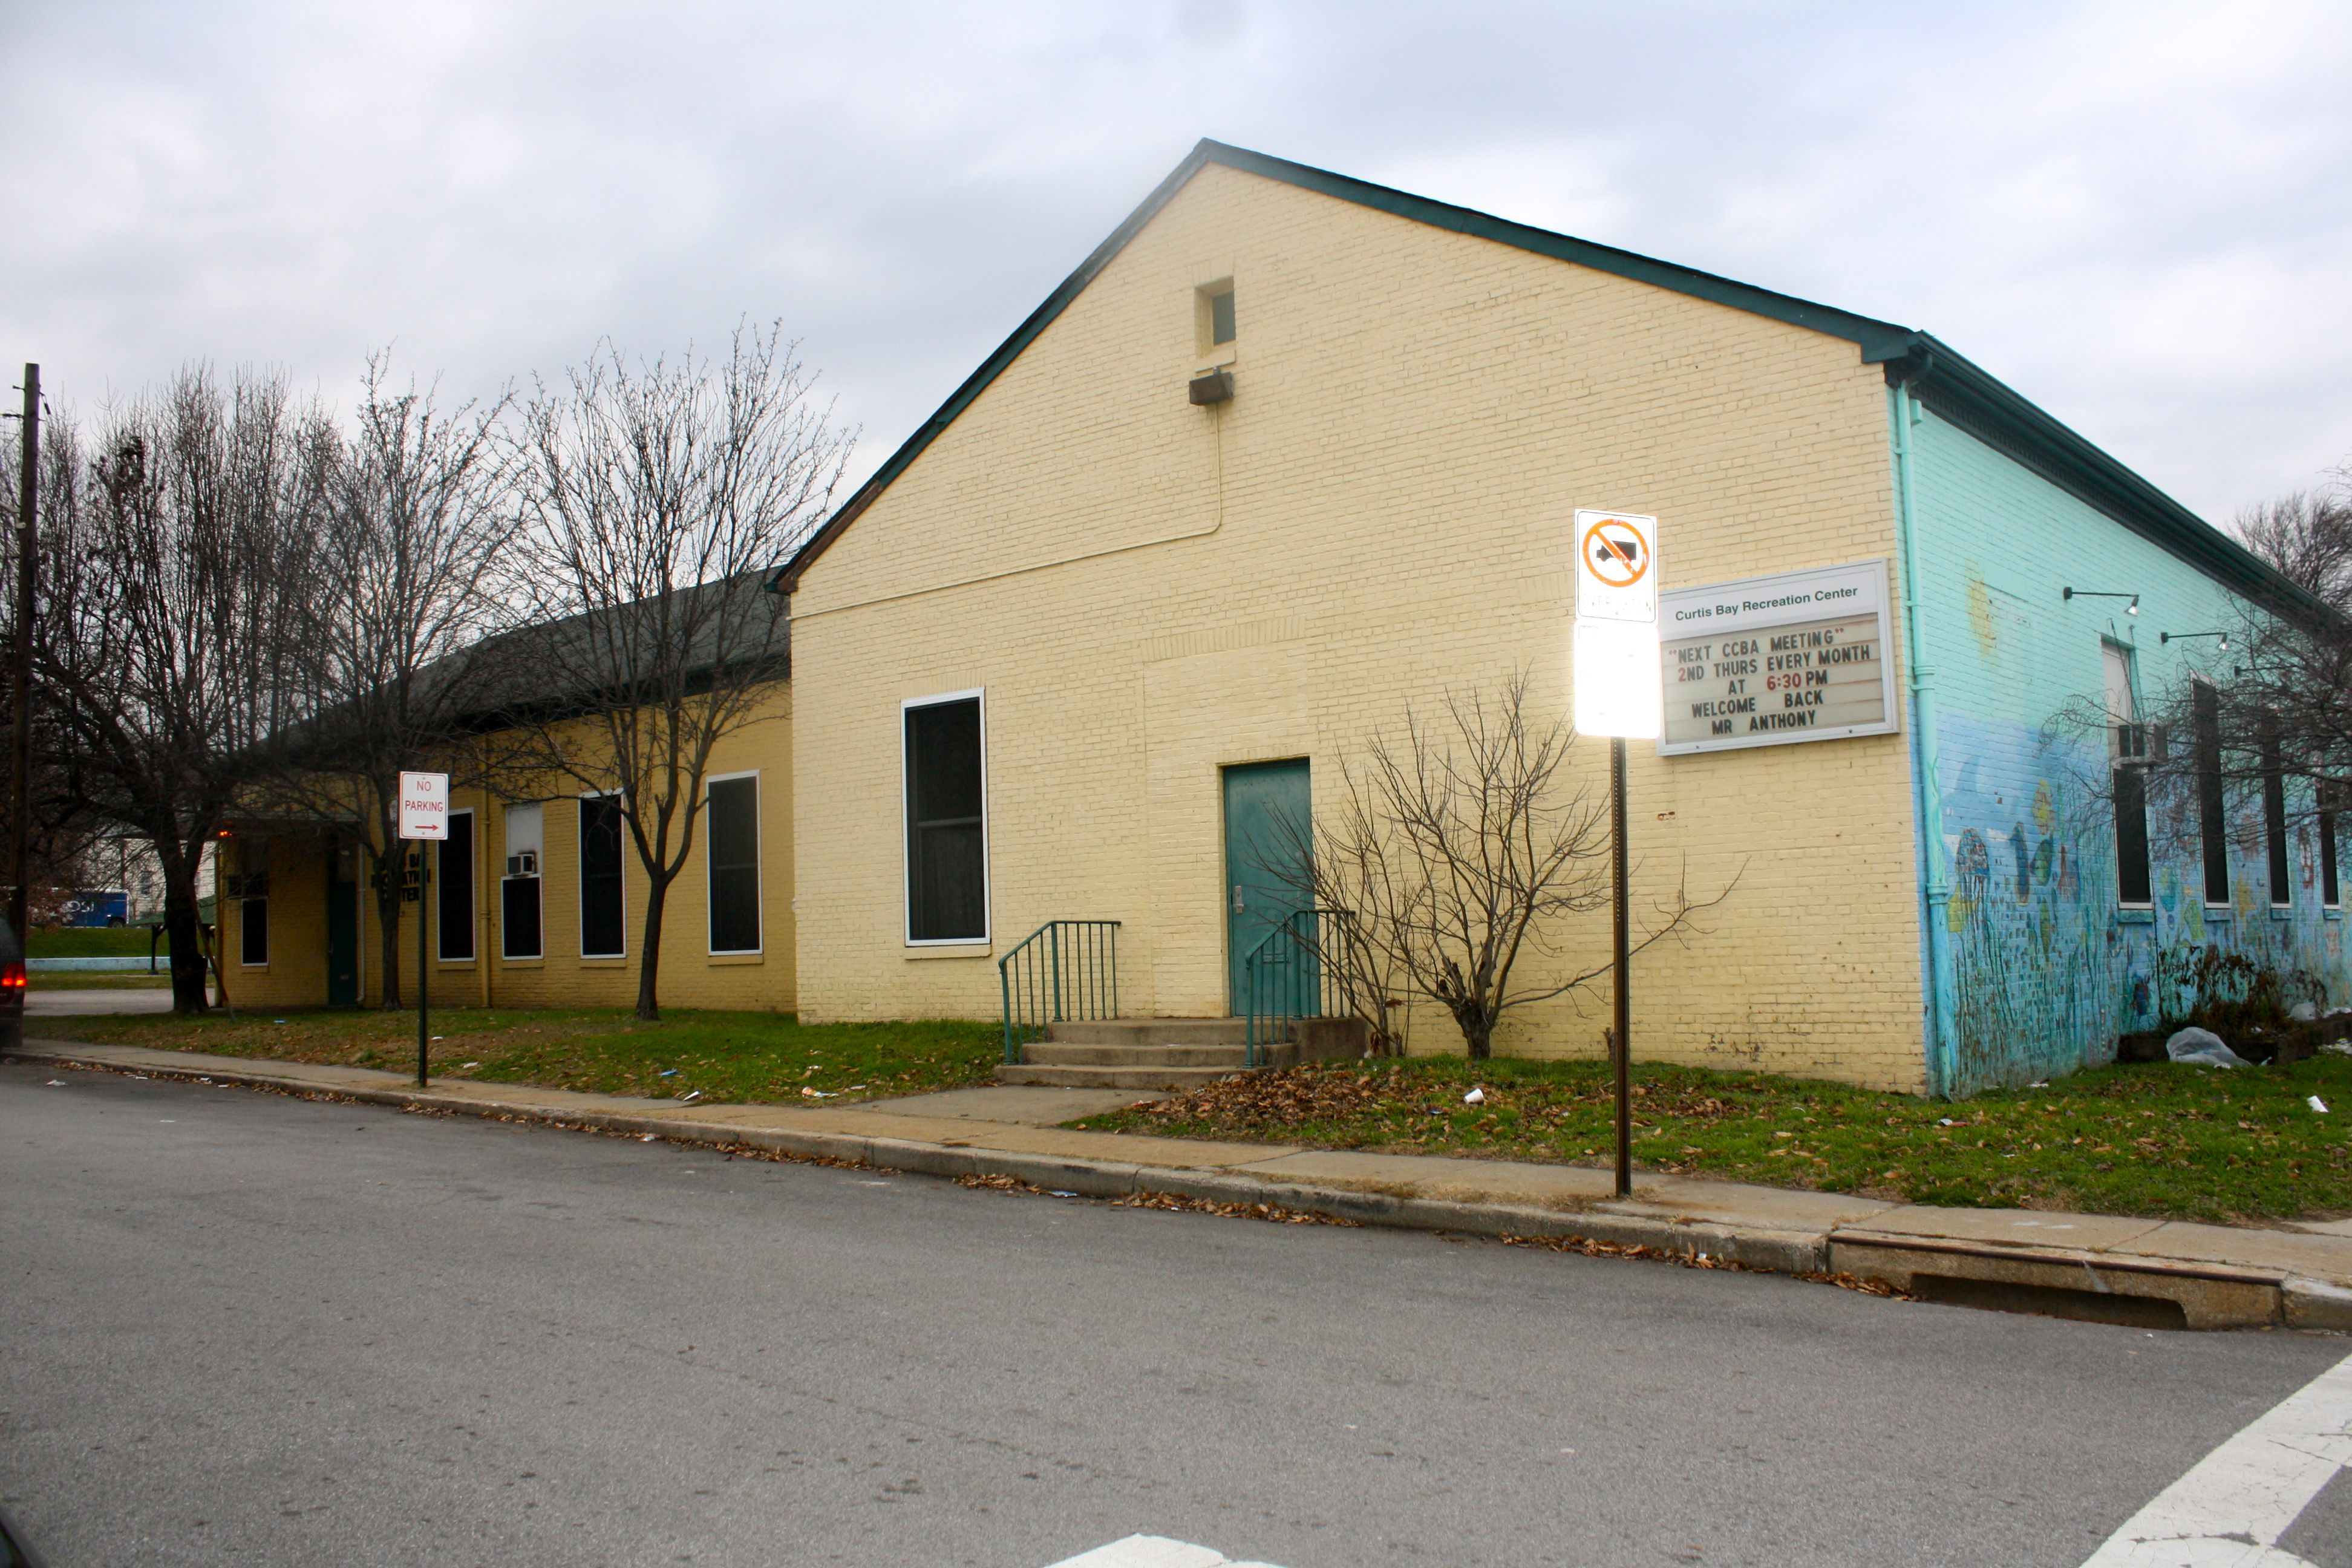 Curtis Bay Recreation Center